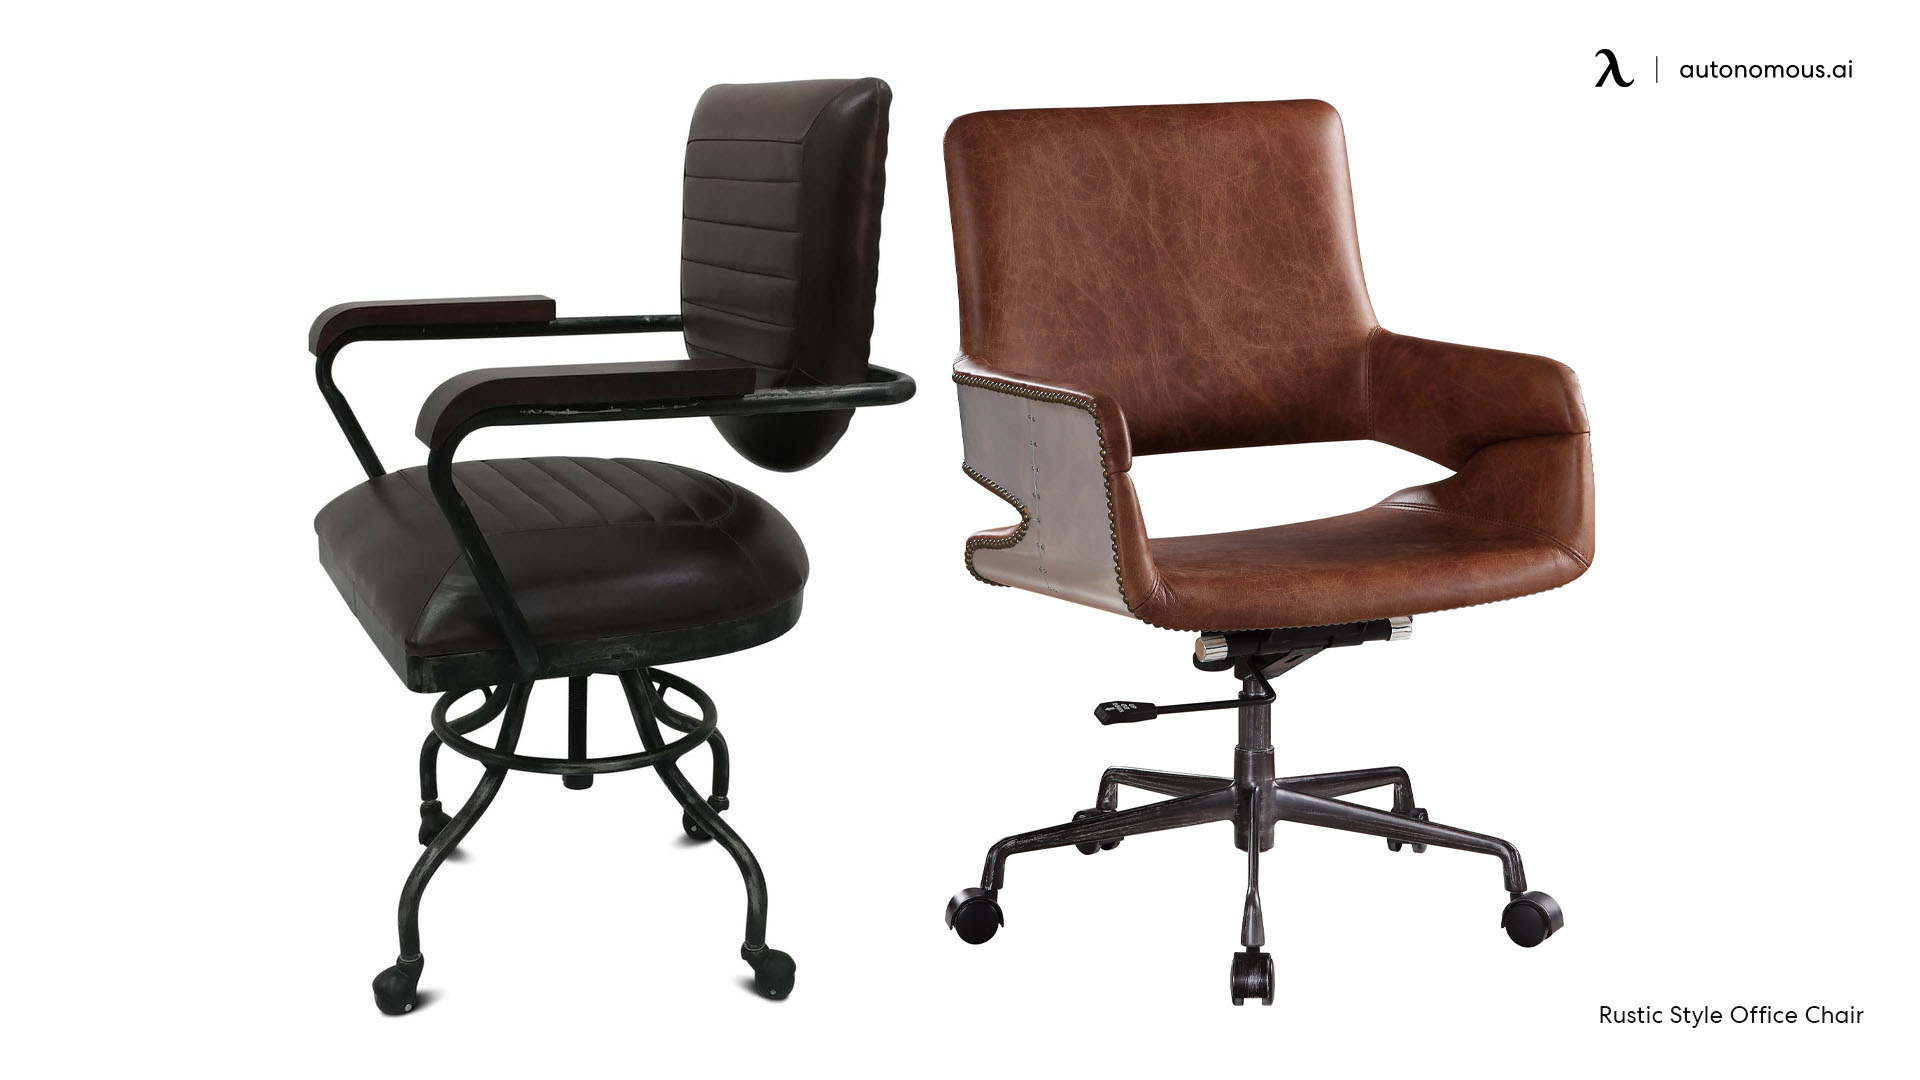 Photo of Rustic Style Office Chair